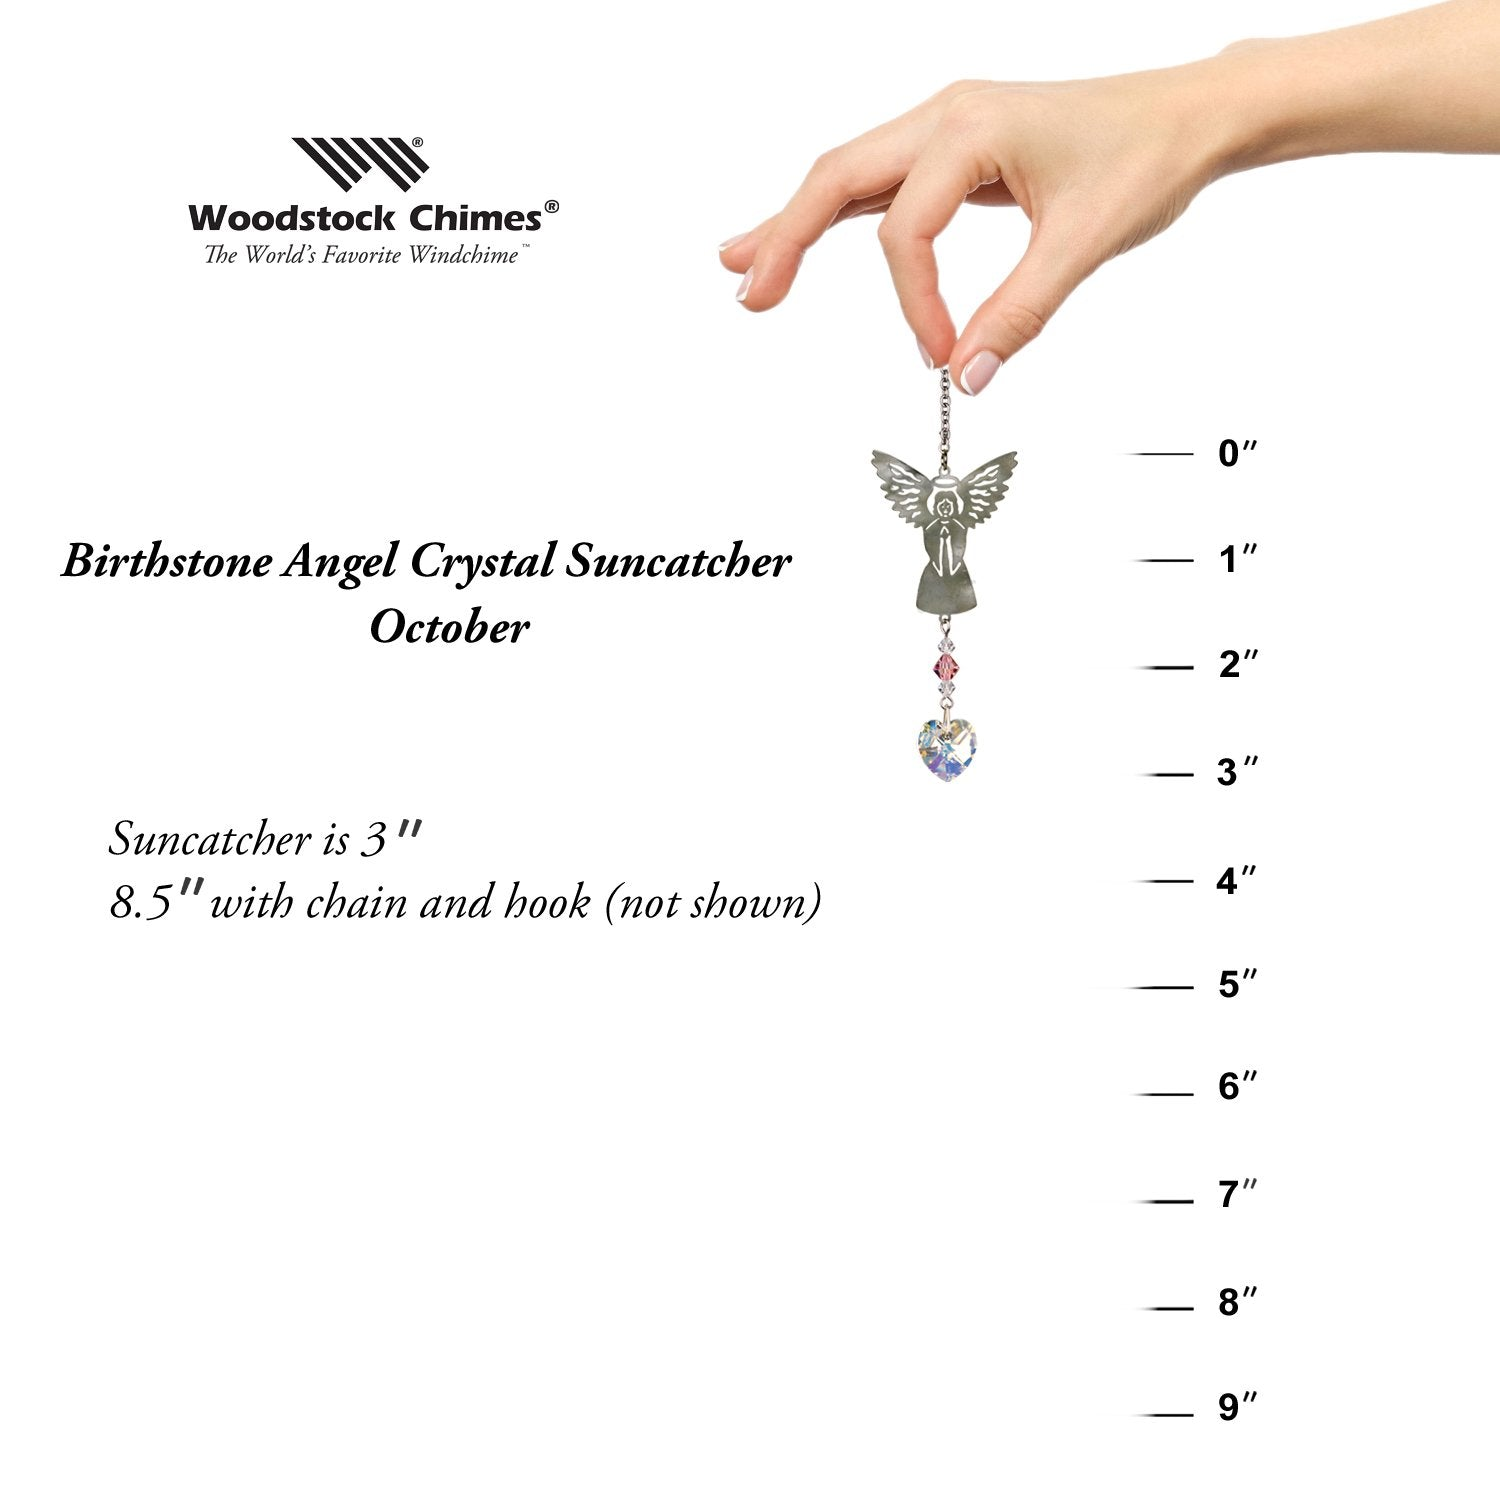 Birthstone Angel Crystal Suncatcher - October proportion image